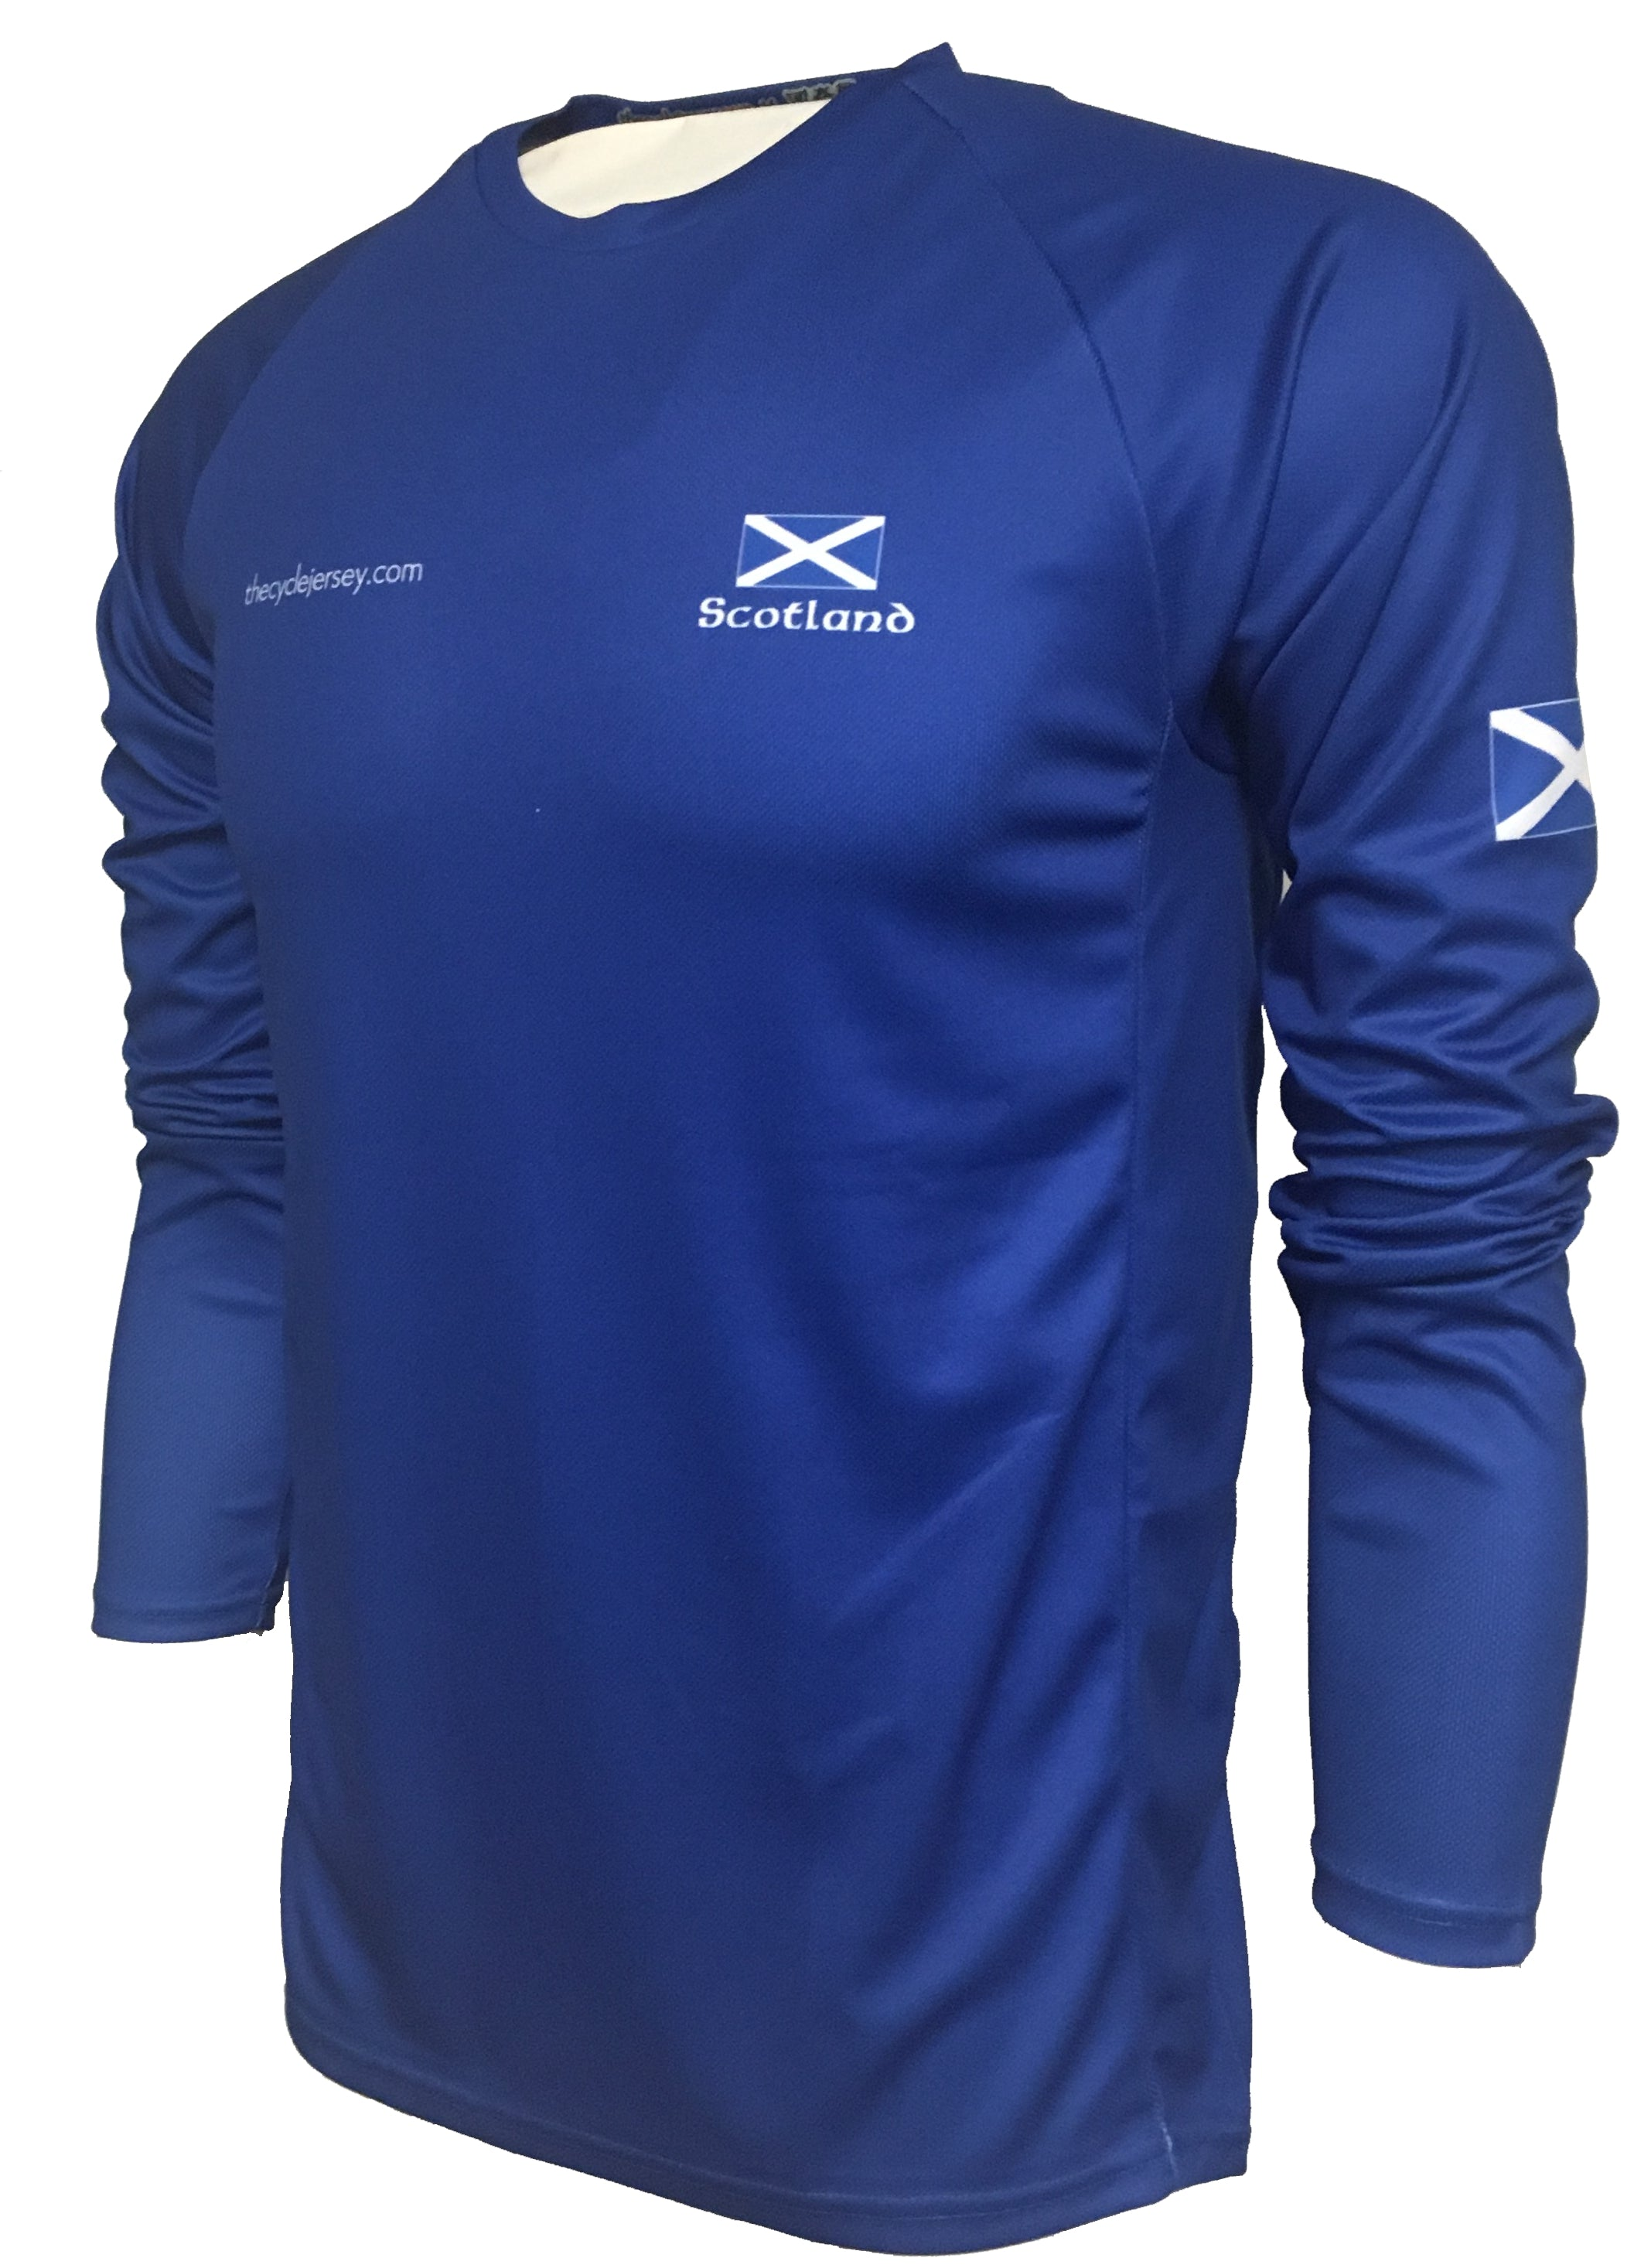 Scotland Original Enduro Cycle Jersey Front